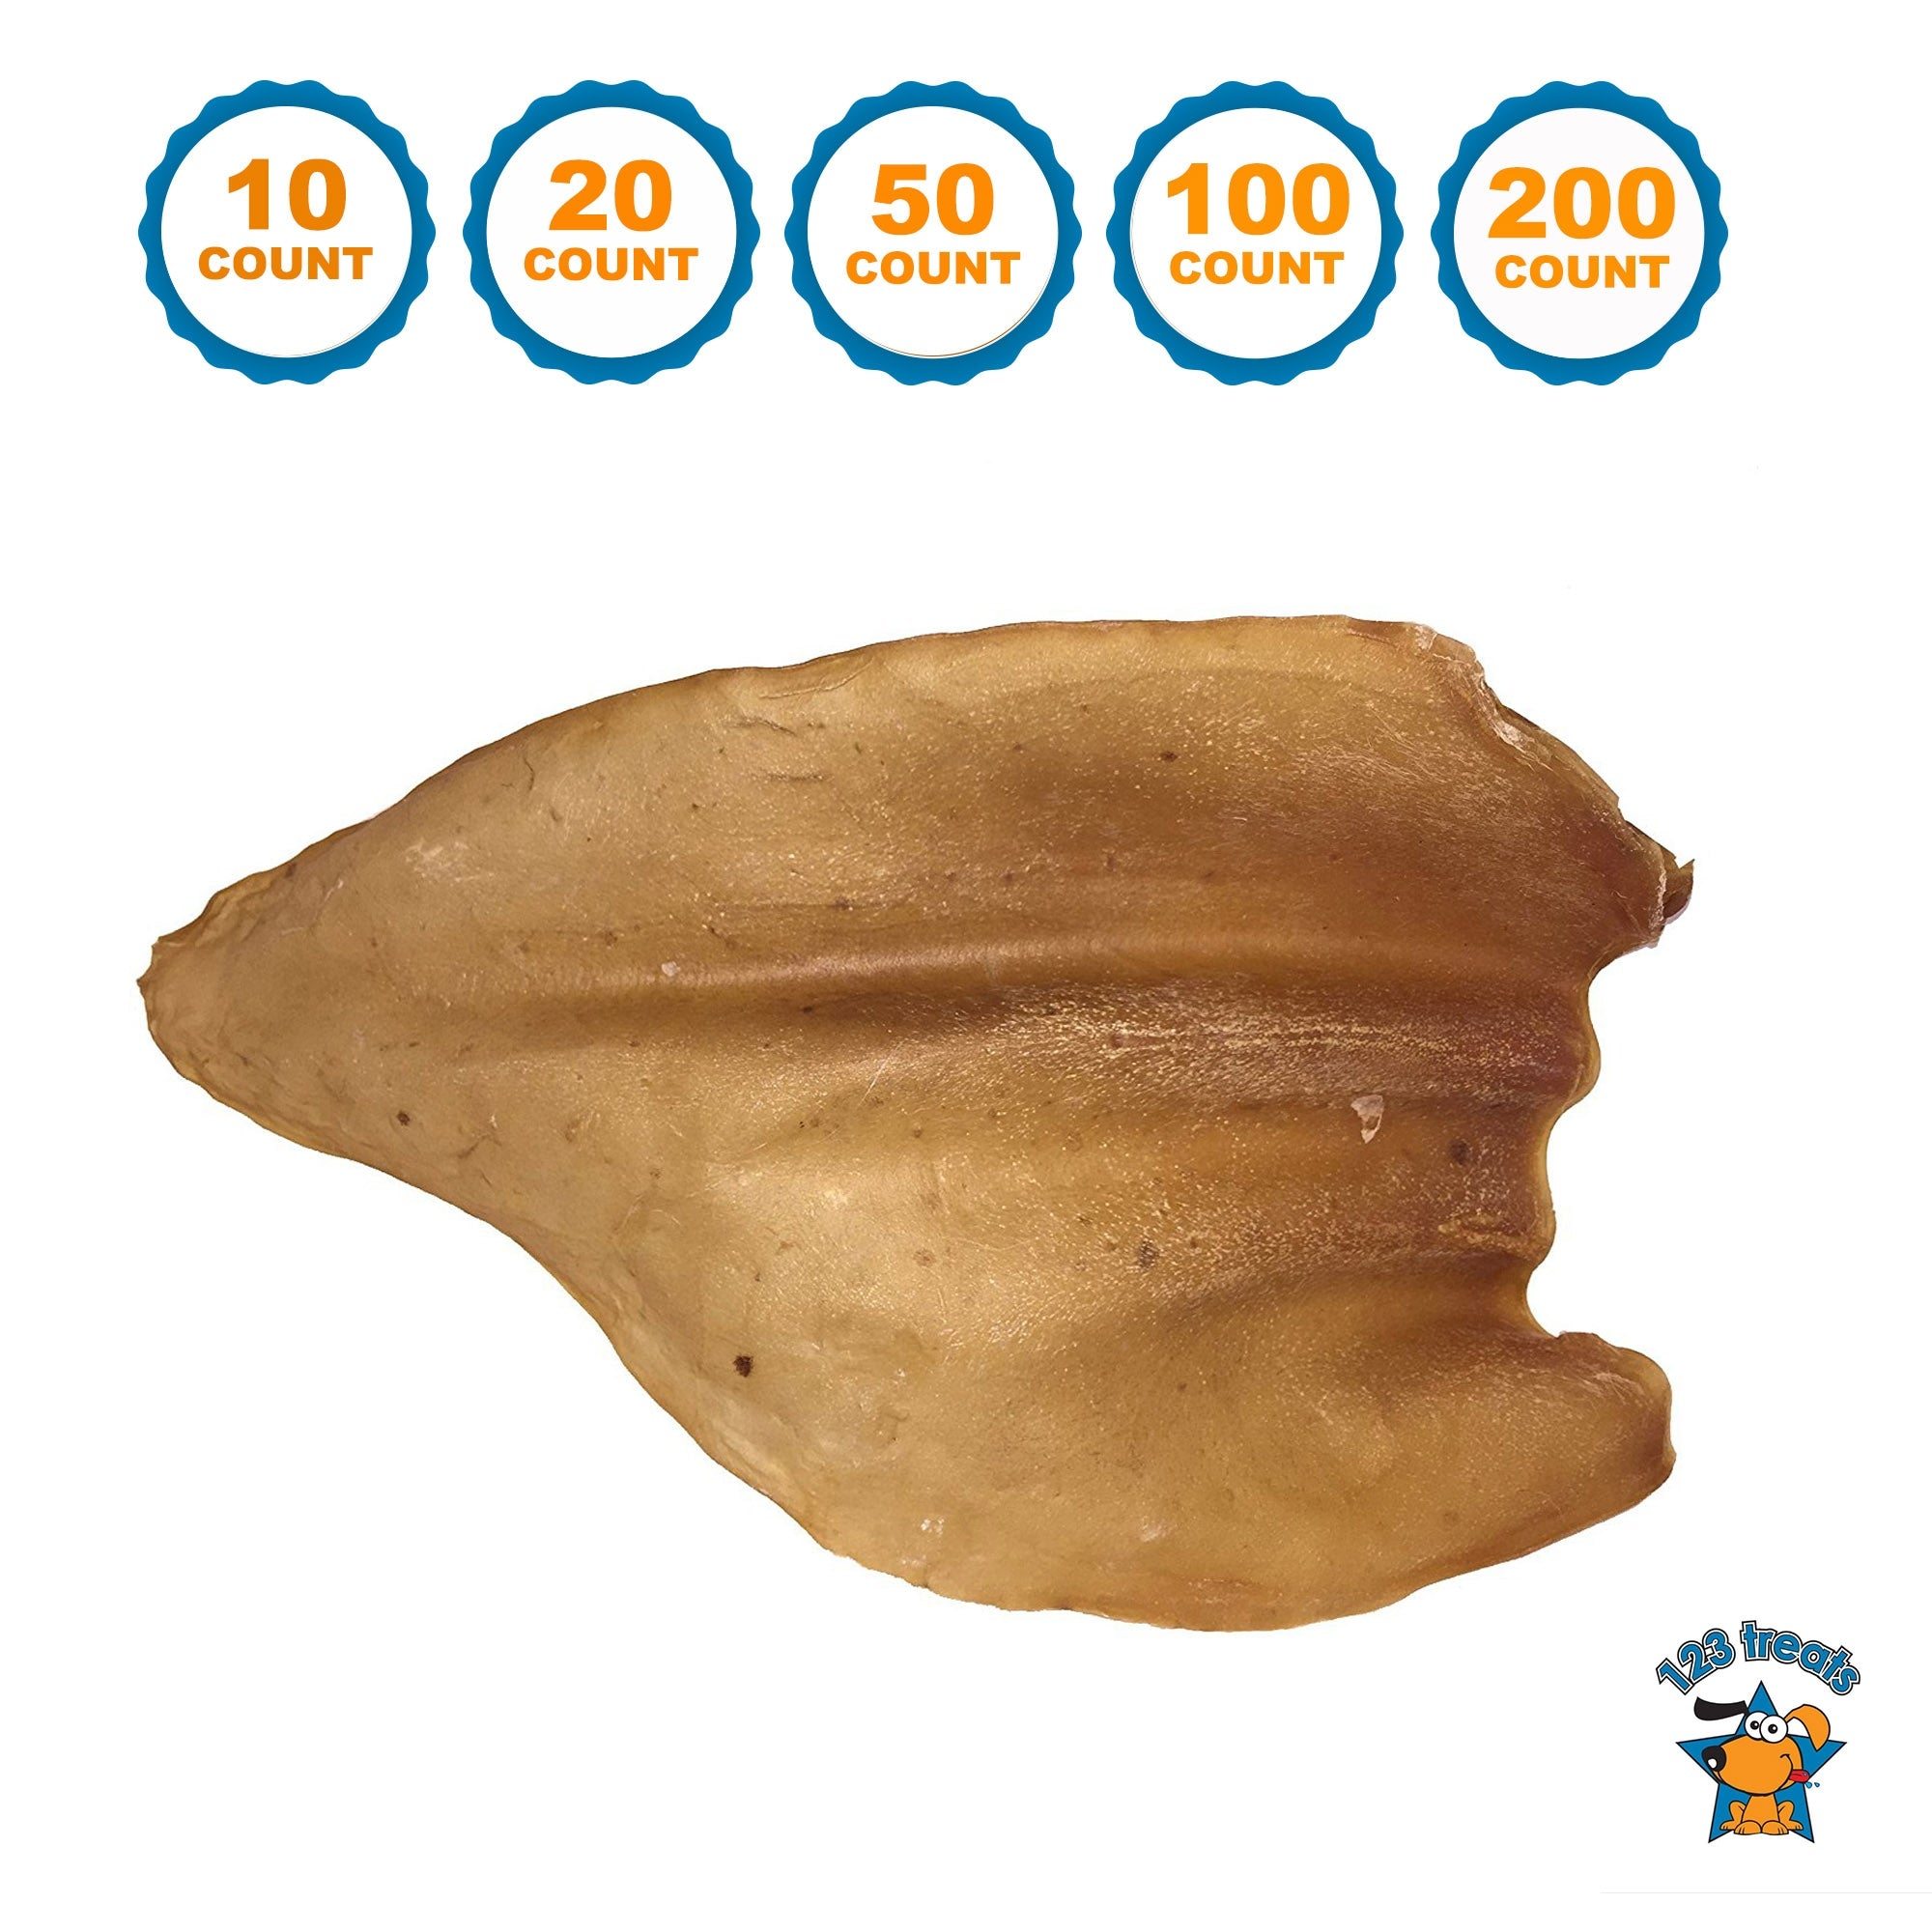 COW EARS for Dogs | 100% Natural Large Cow Ears Bulk Dog Treats 10, 20, 50, 100 or 200 Count